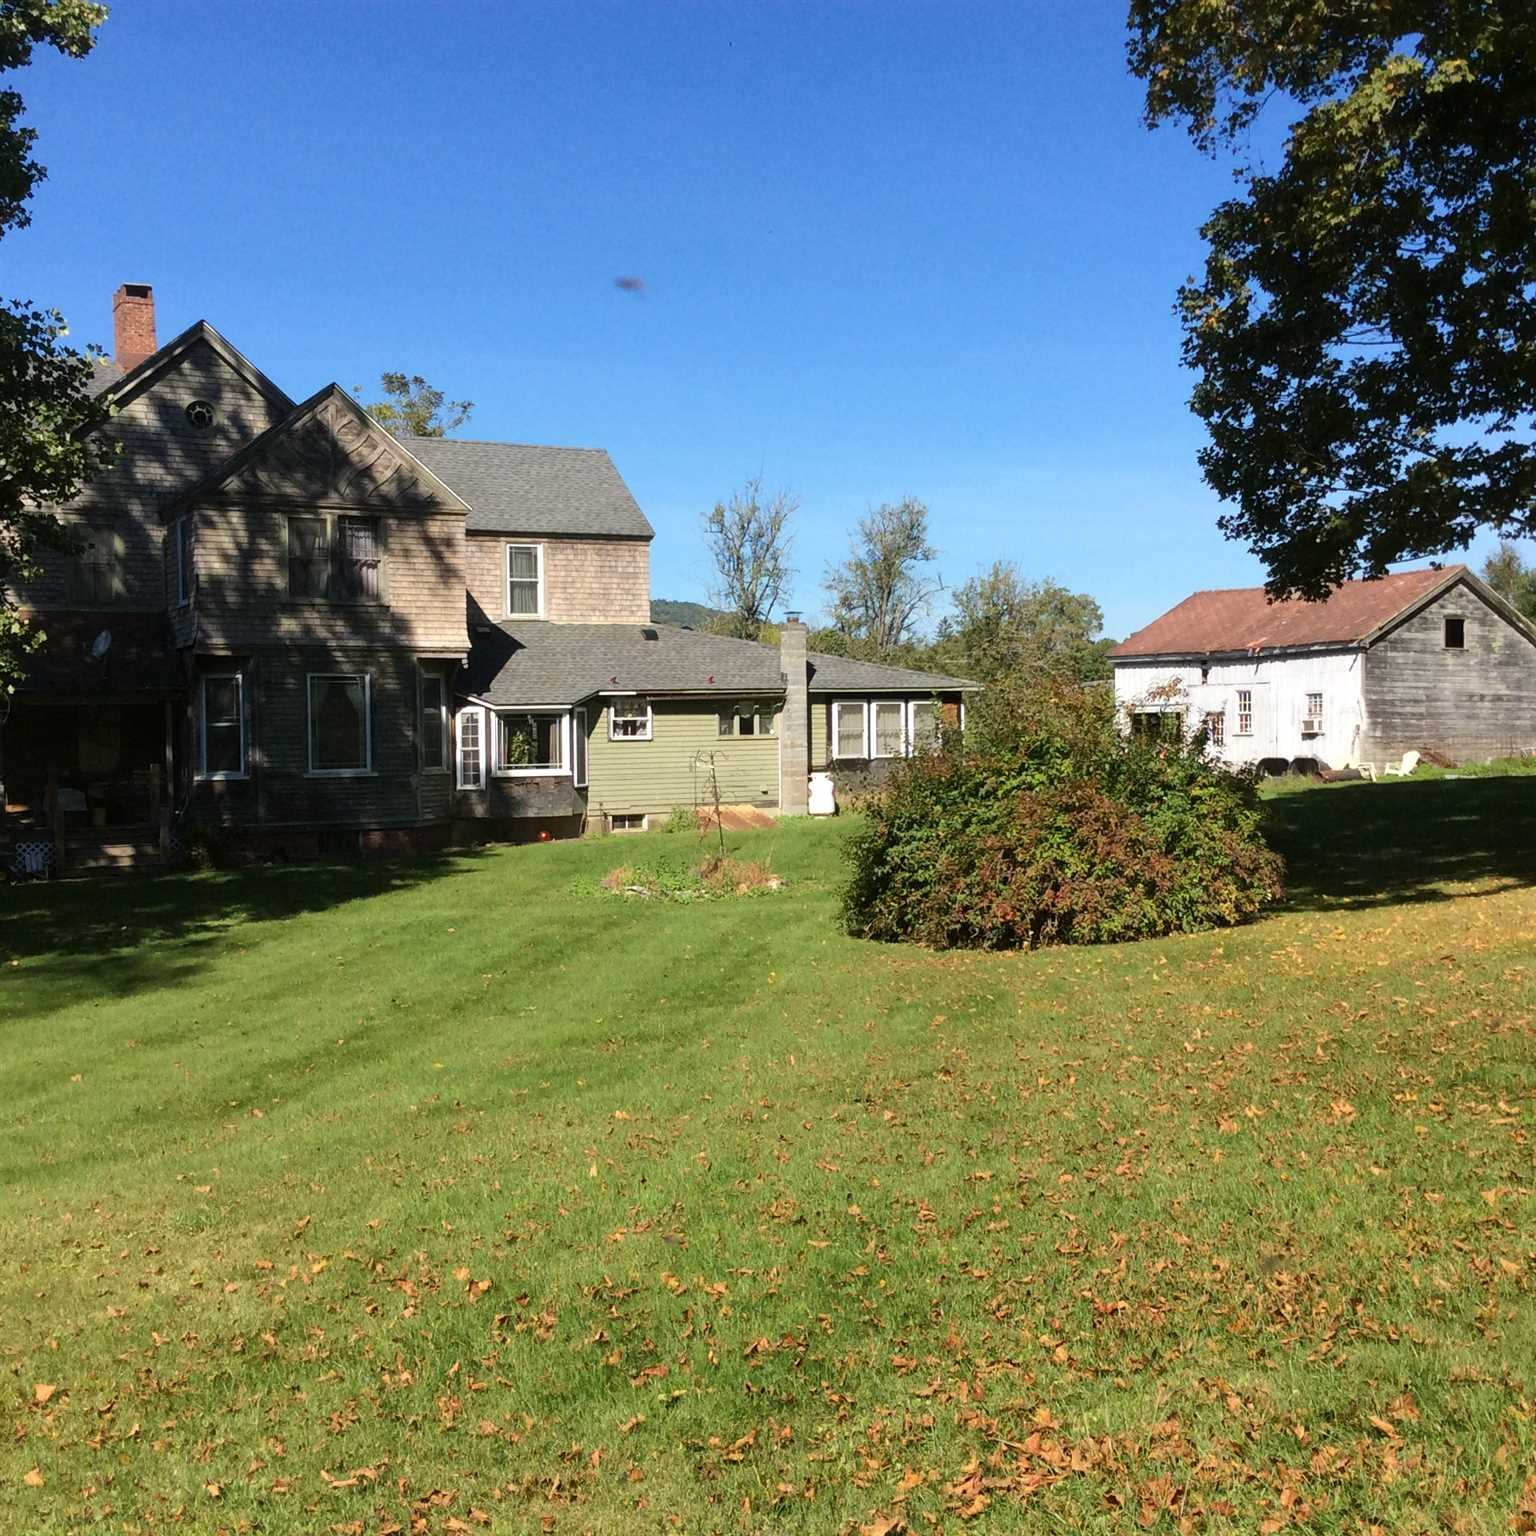 Single Family Home for Sale at 64 LEEDSVILLE Road 64 LEEDSVILLE Road Amenia, New York 12501 United States